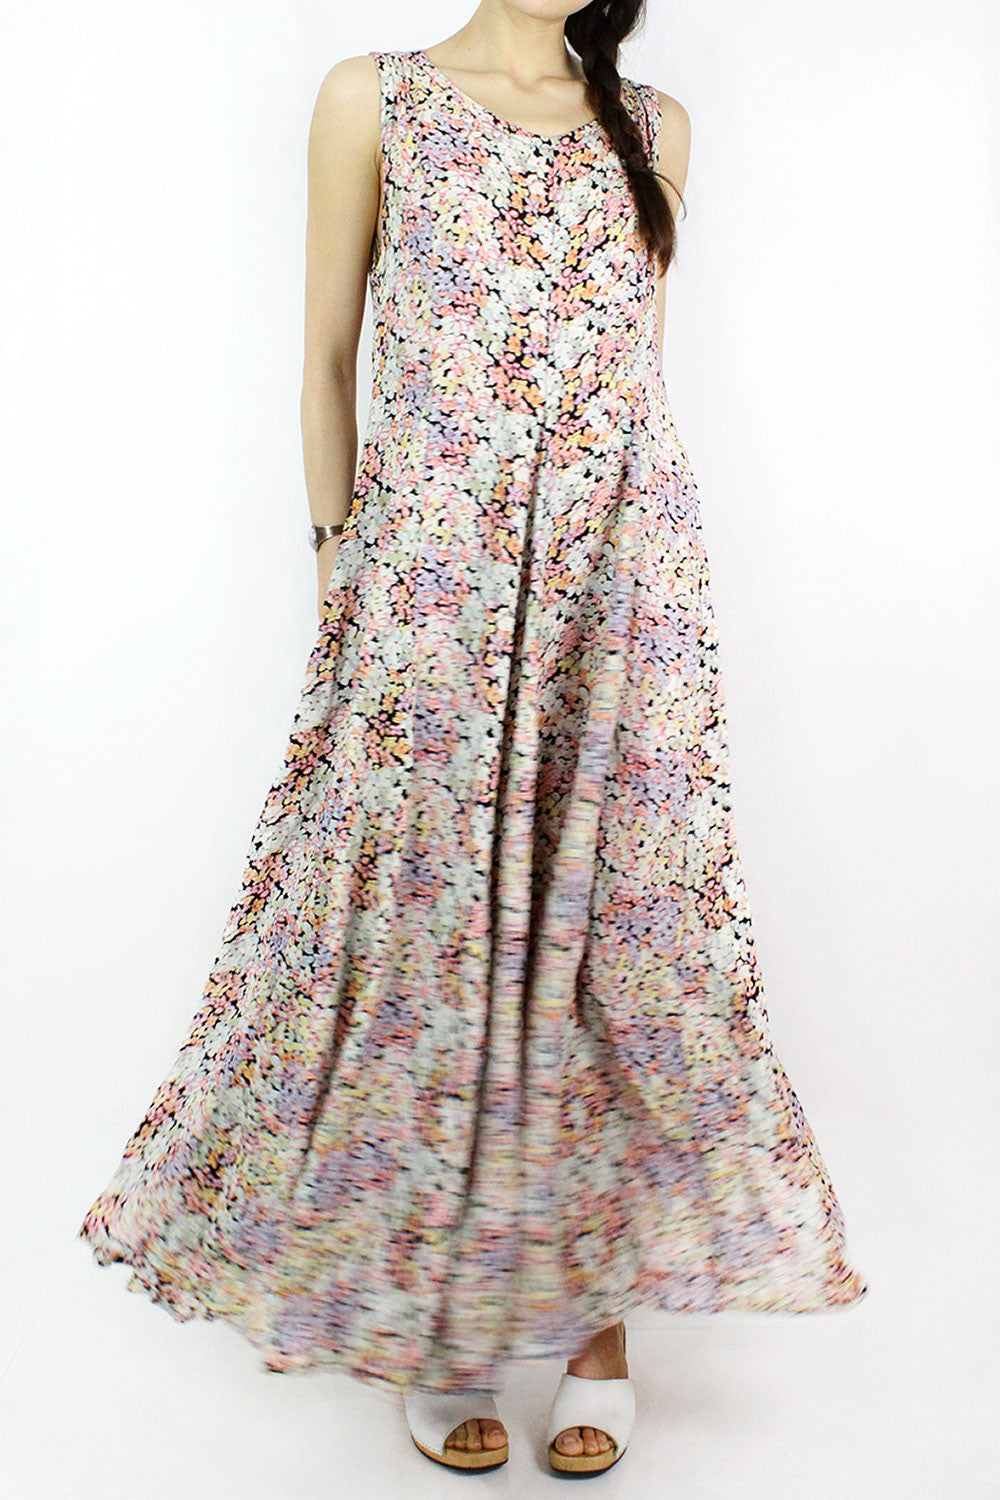 Swept Up Floral Dress M/L